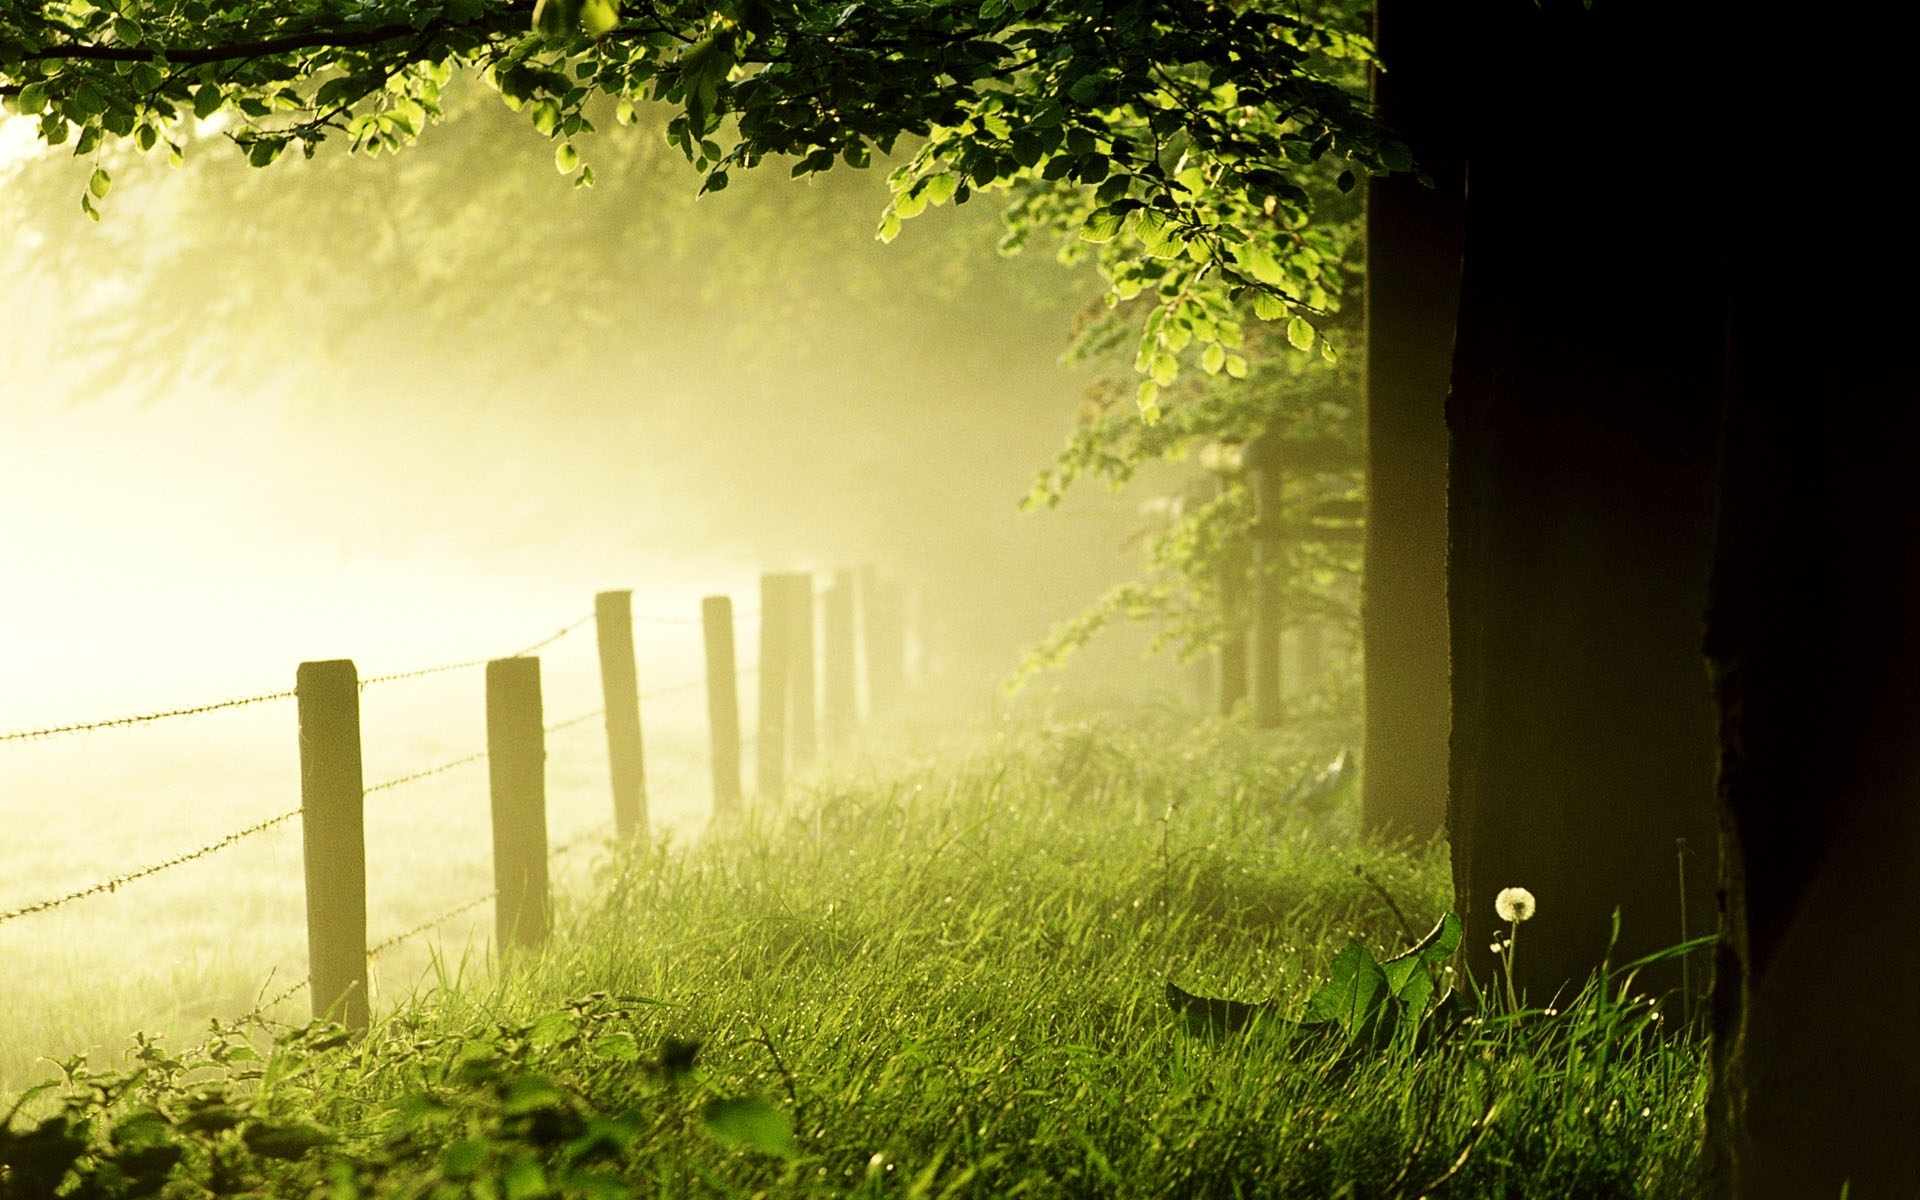 Spring and summer scenery   Scenery Pics Wallpaper 22175505 1920x1200